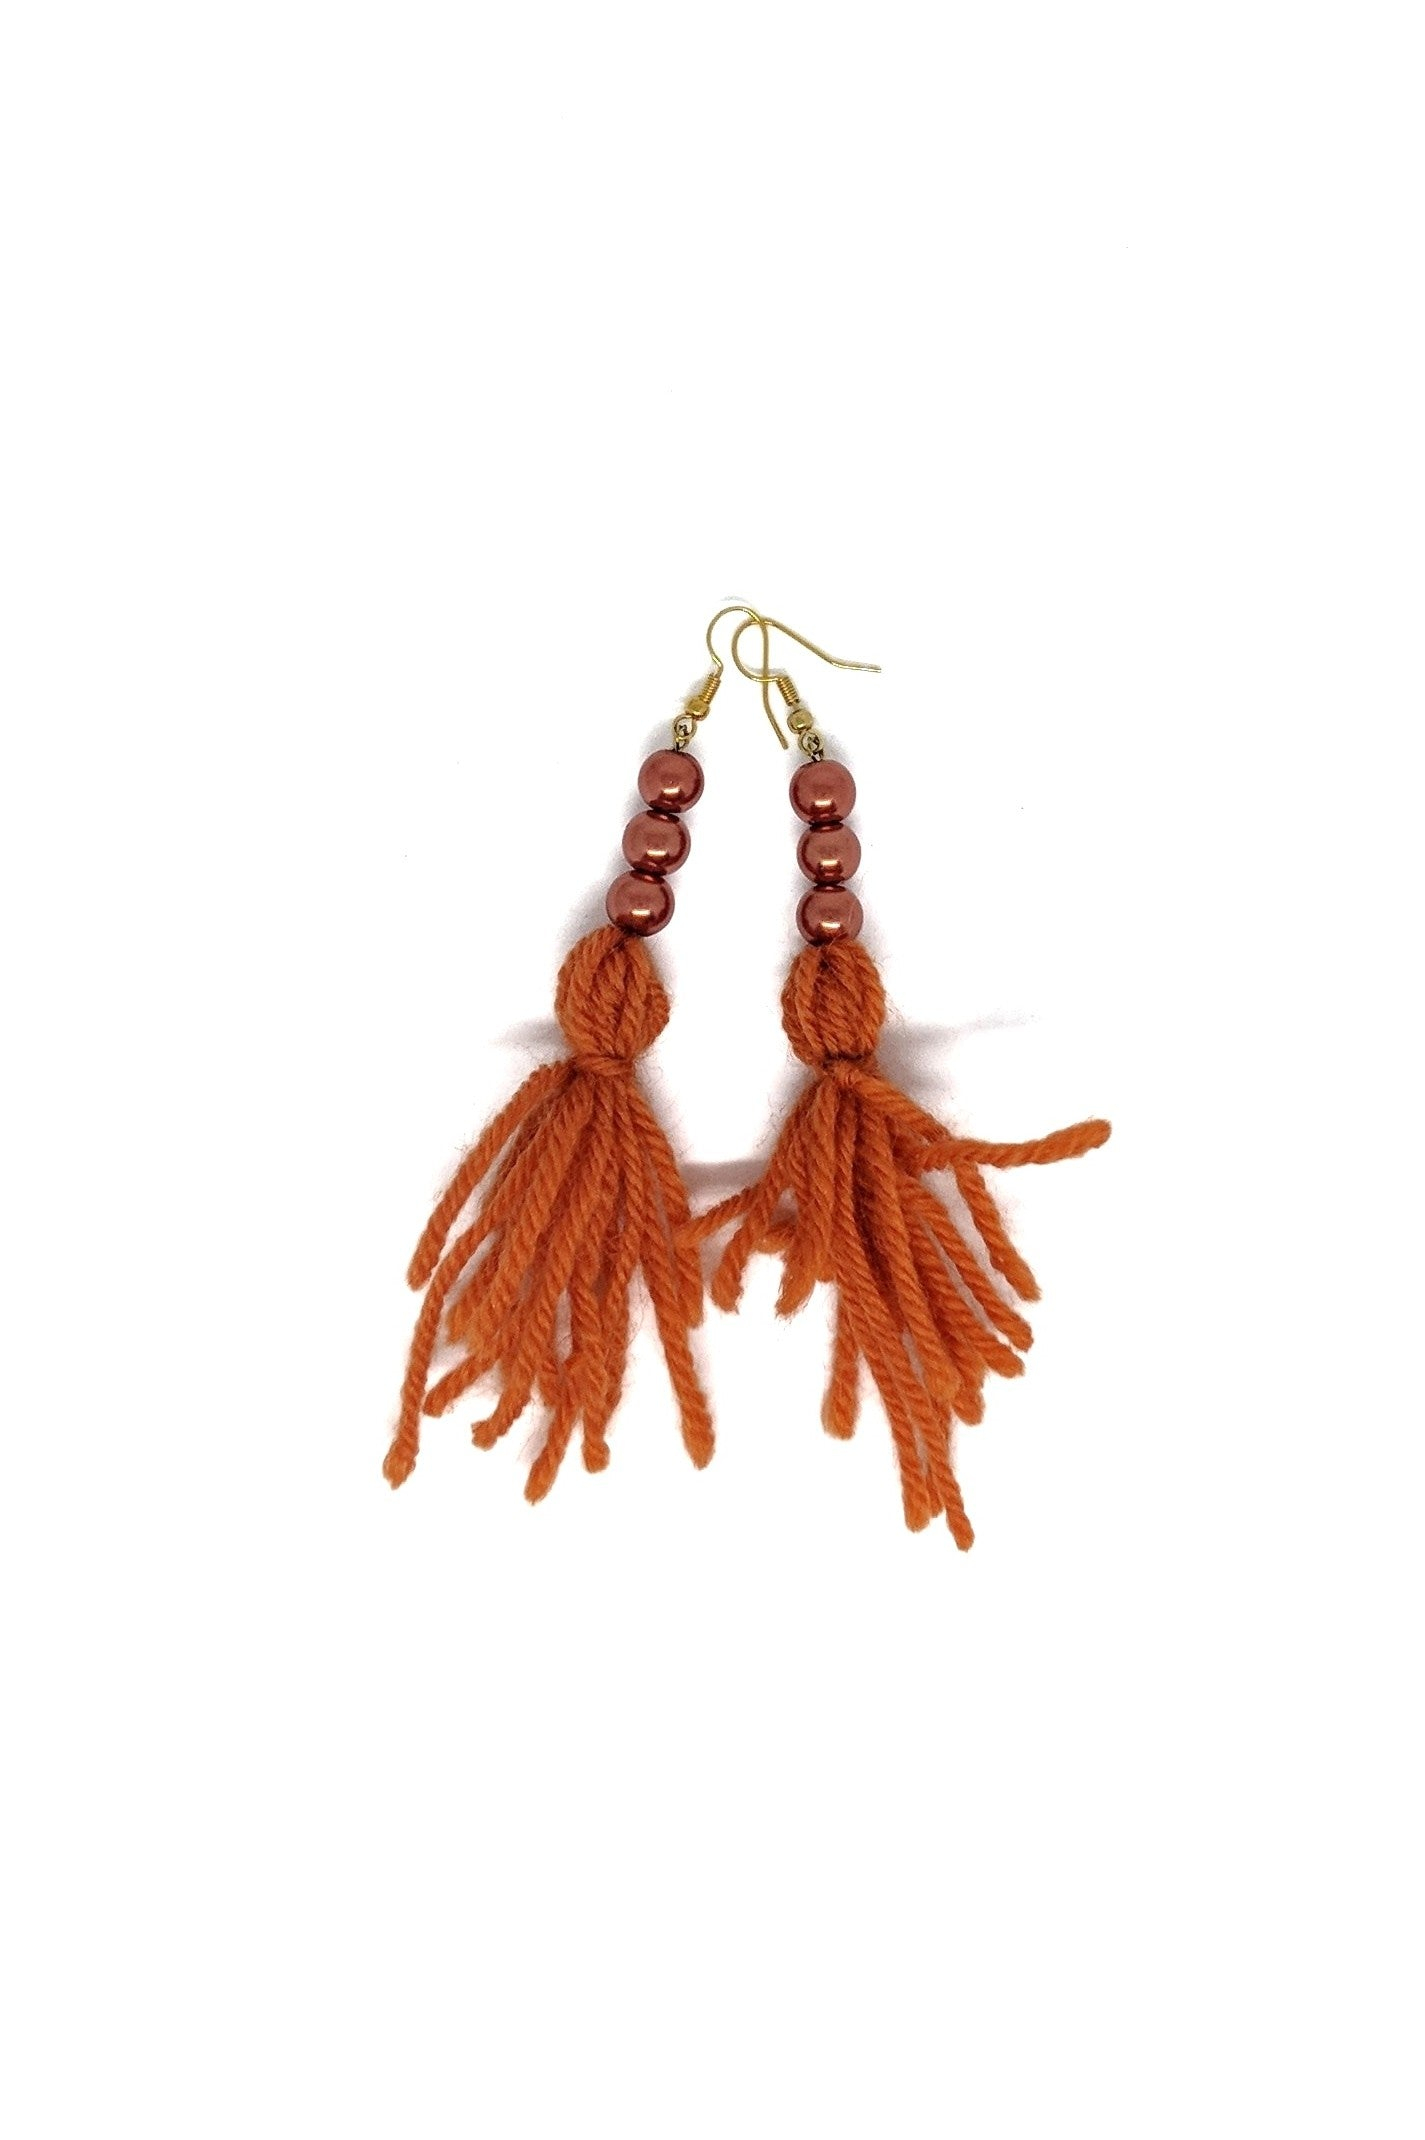 WOOL TASSEL DROP EARRINGS WITH PEARLS